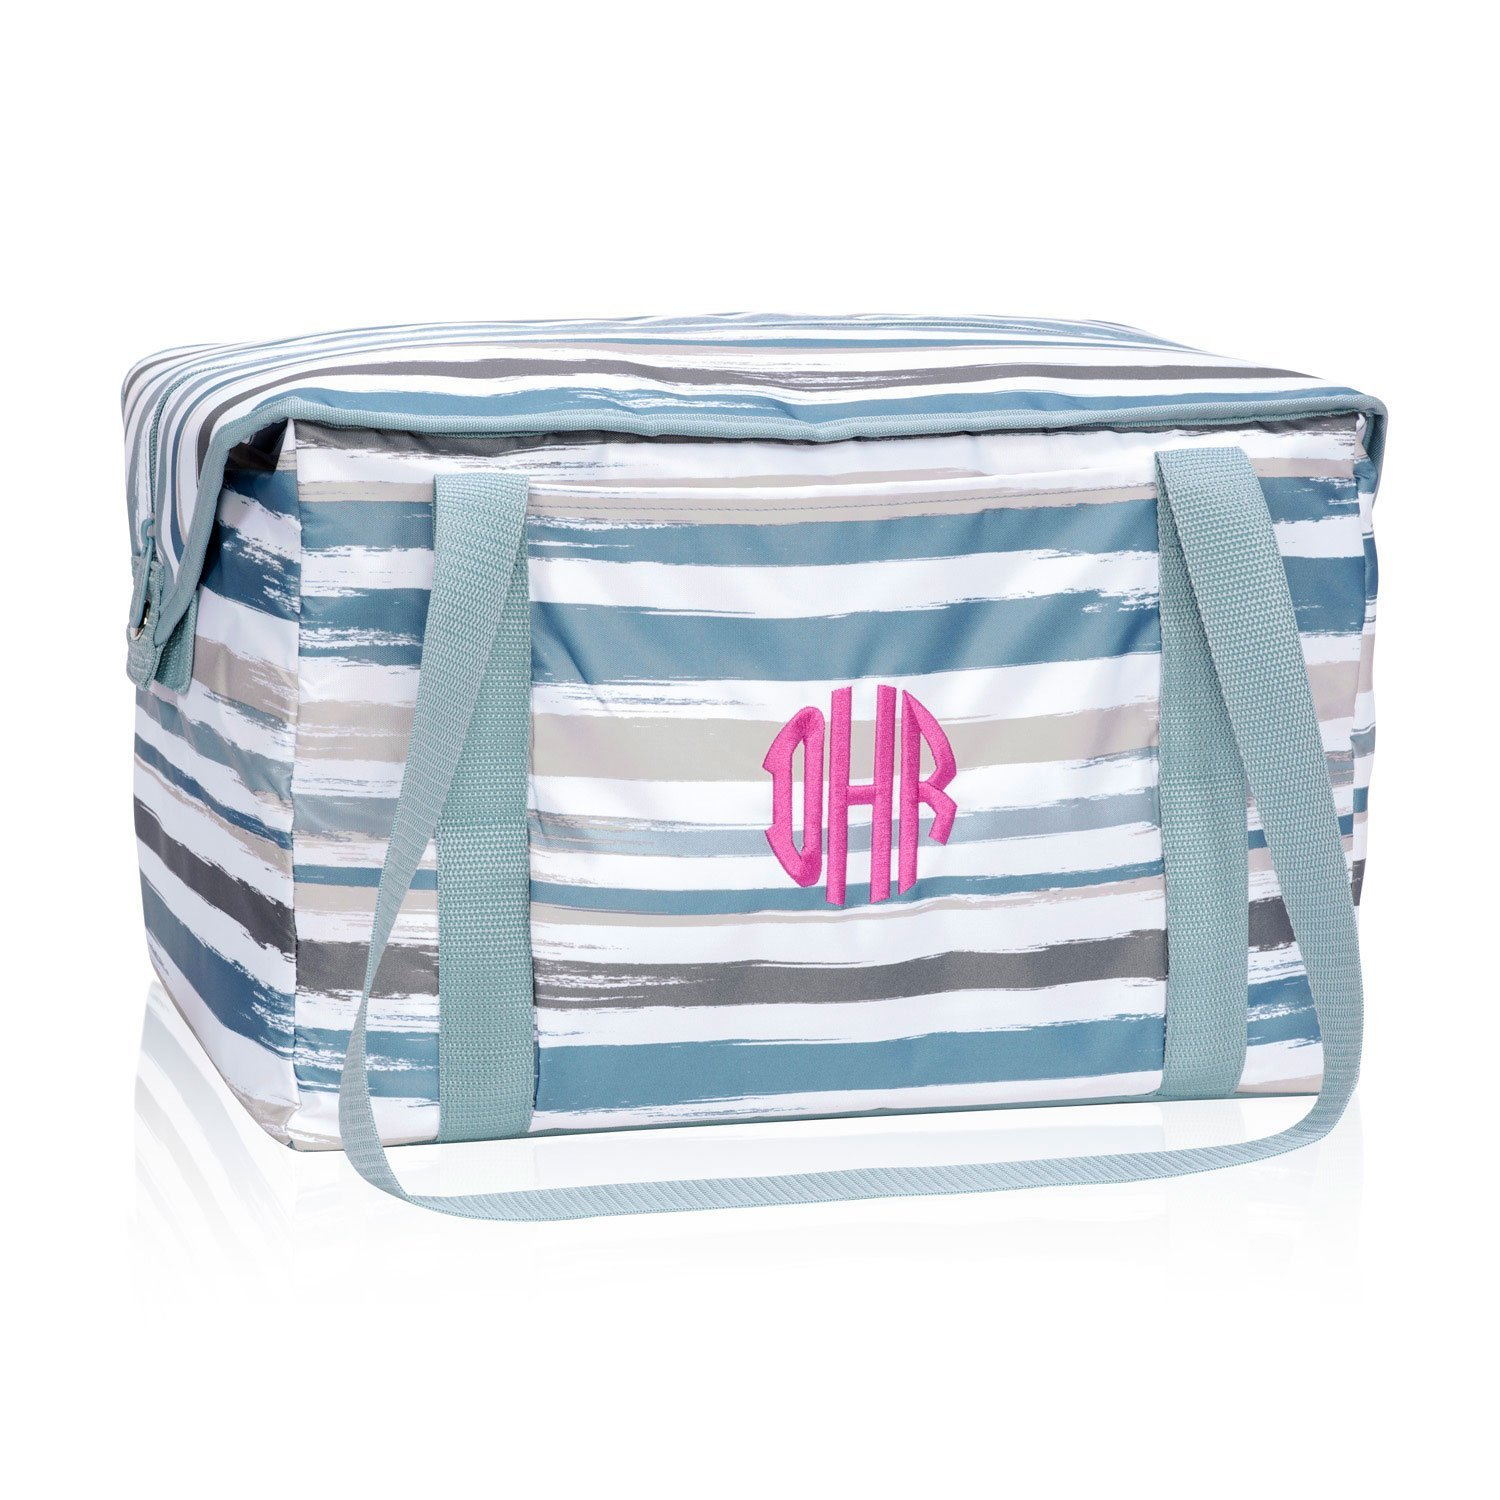 Thirty-One Fresh Market Thermal in Brush Strokes - No Monogram - 4181